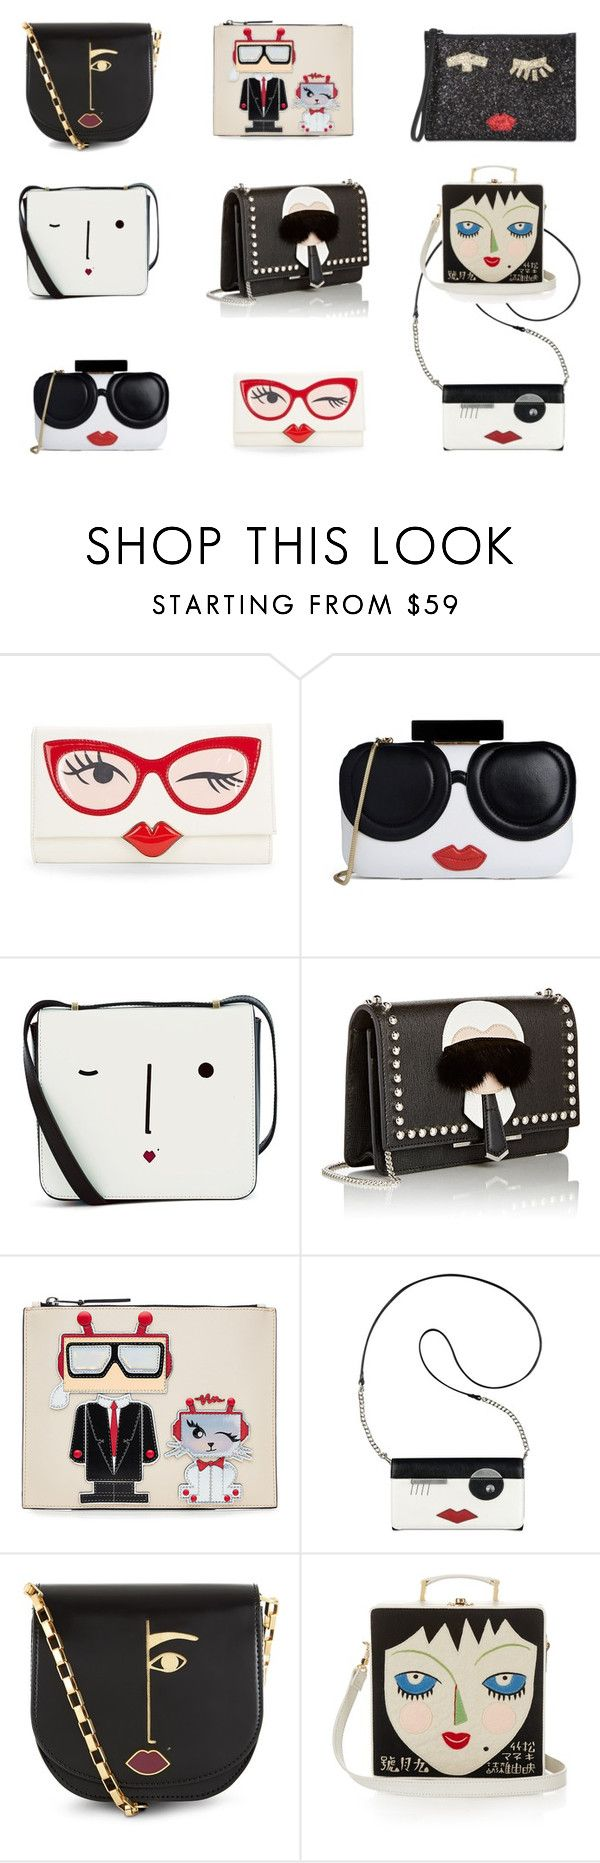 """""""Let's put a smile on that purse"""" by insanelyit on Polyvore featuring Kate Spade, Alice + Olivia, Lulu Guinness, Fendi, Karl Lagerfeld, Nine West and Olympia Le-Tan"""